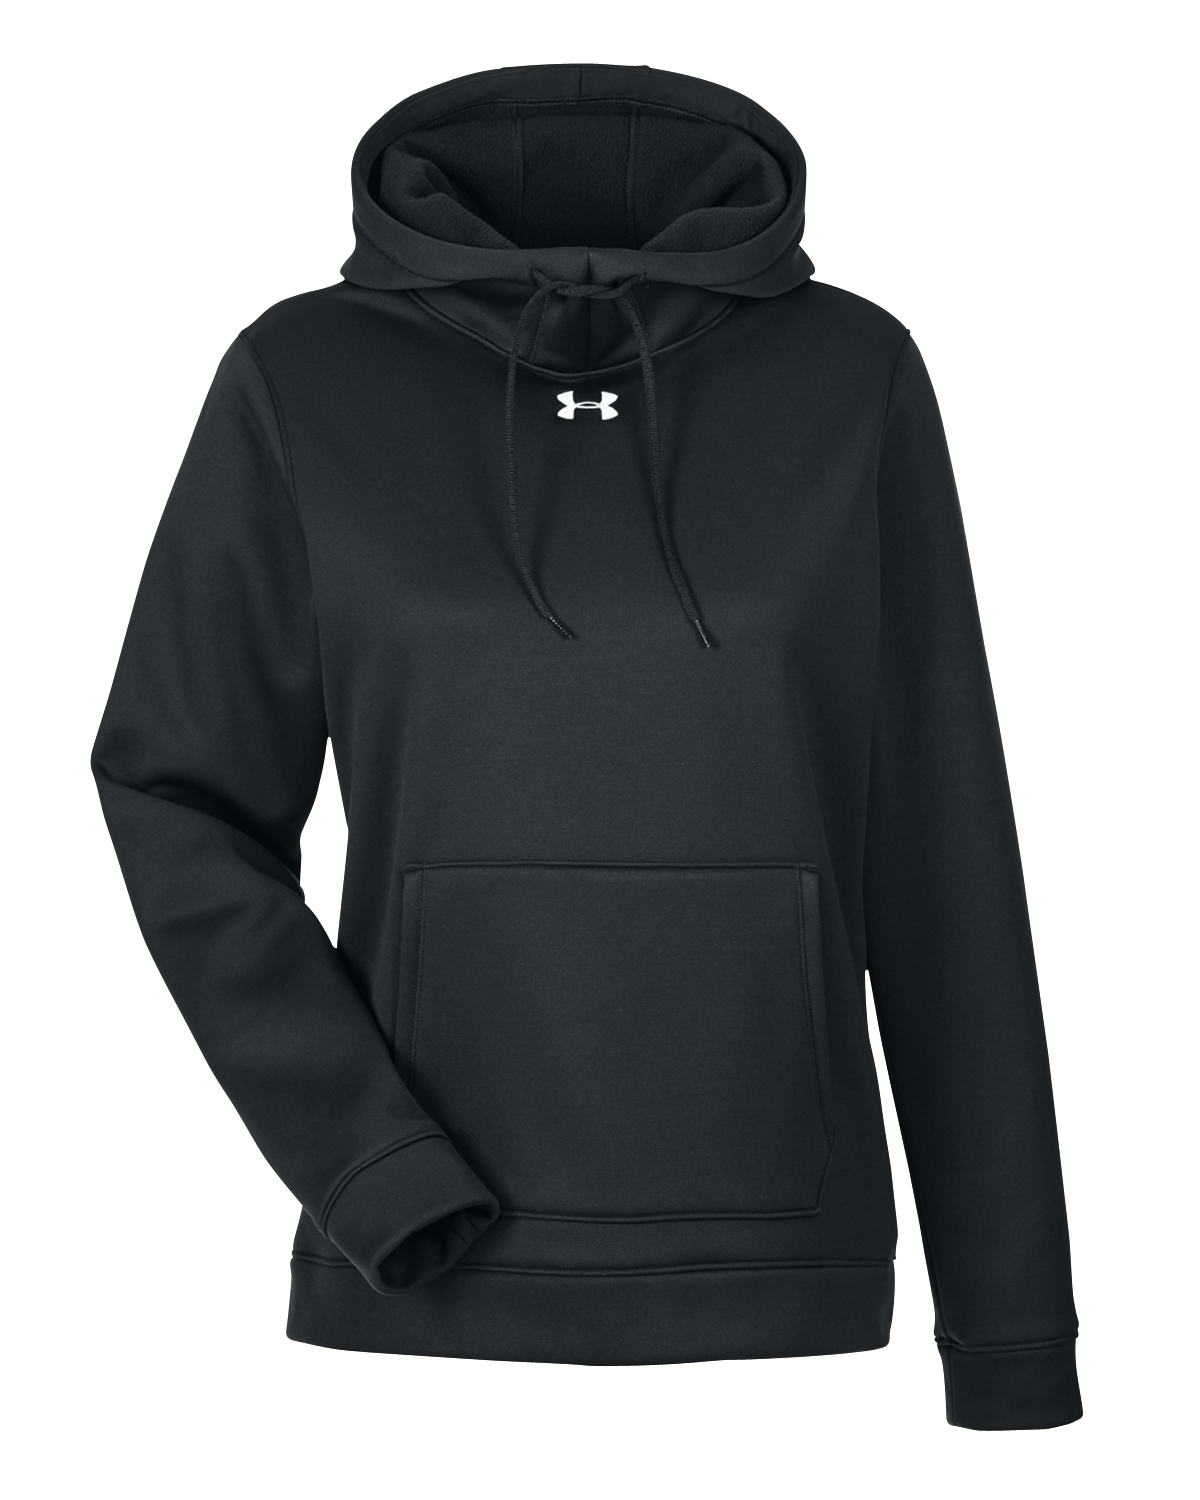 Under Armour 1258826 - Ladies' Storm Armour® Fleece ...